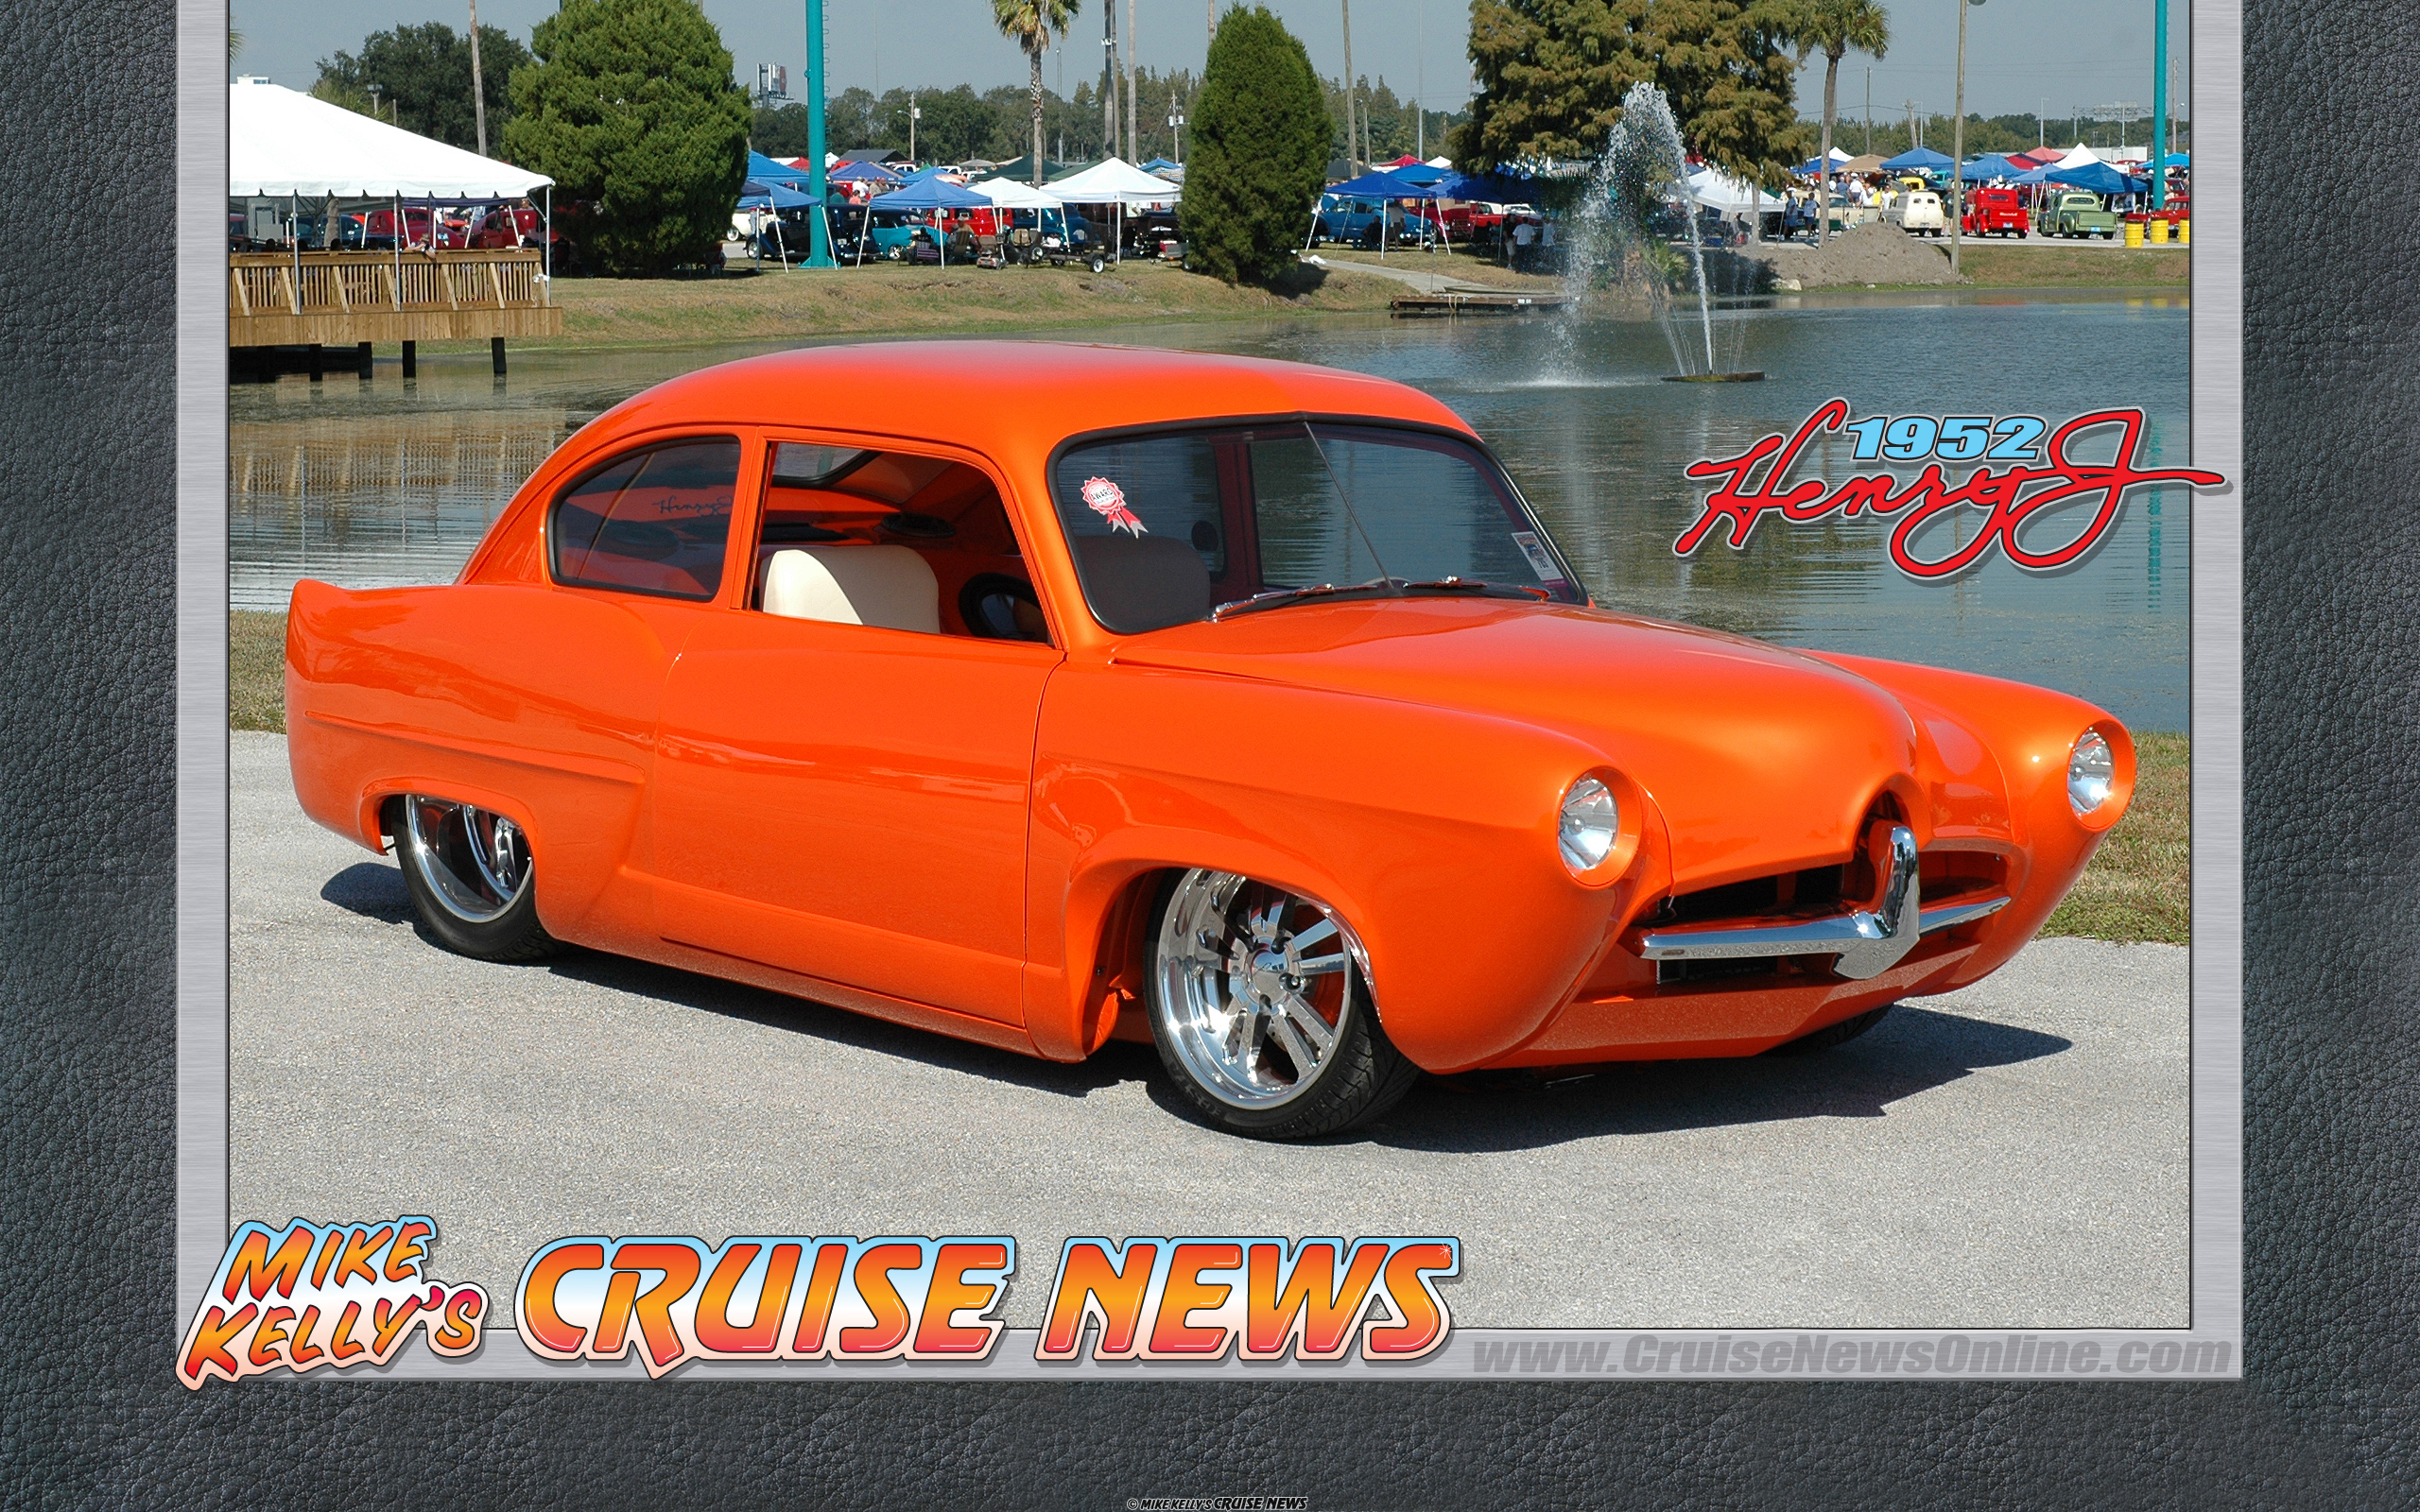 Special Items Mike Kellys Cruise News 1955 Ford F100 Pro Street 2560x1600 Widescreen